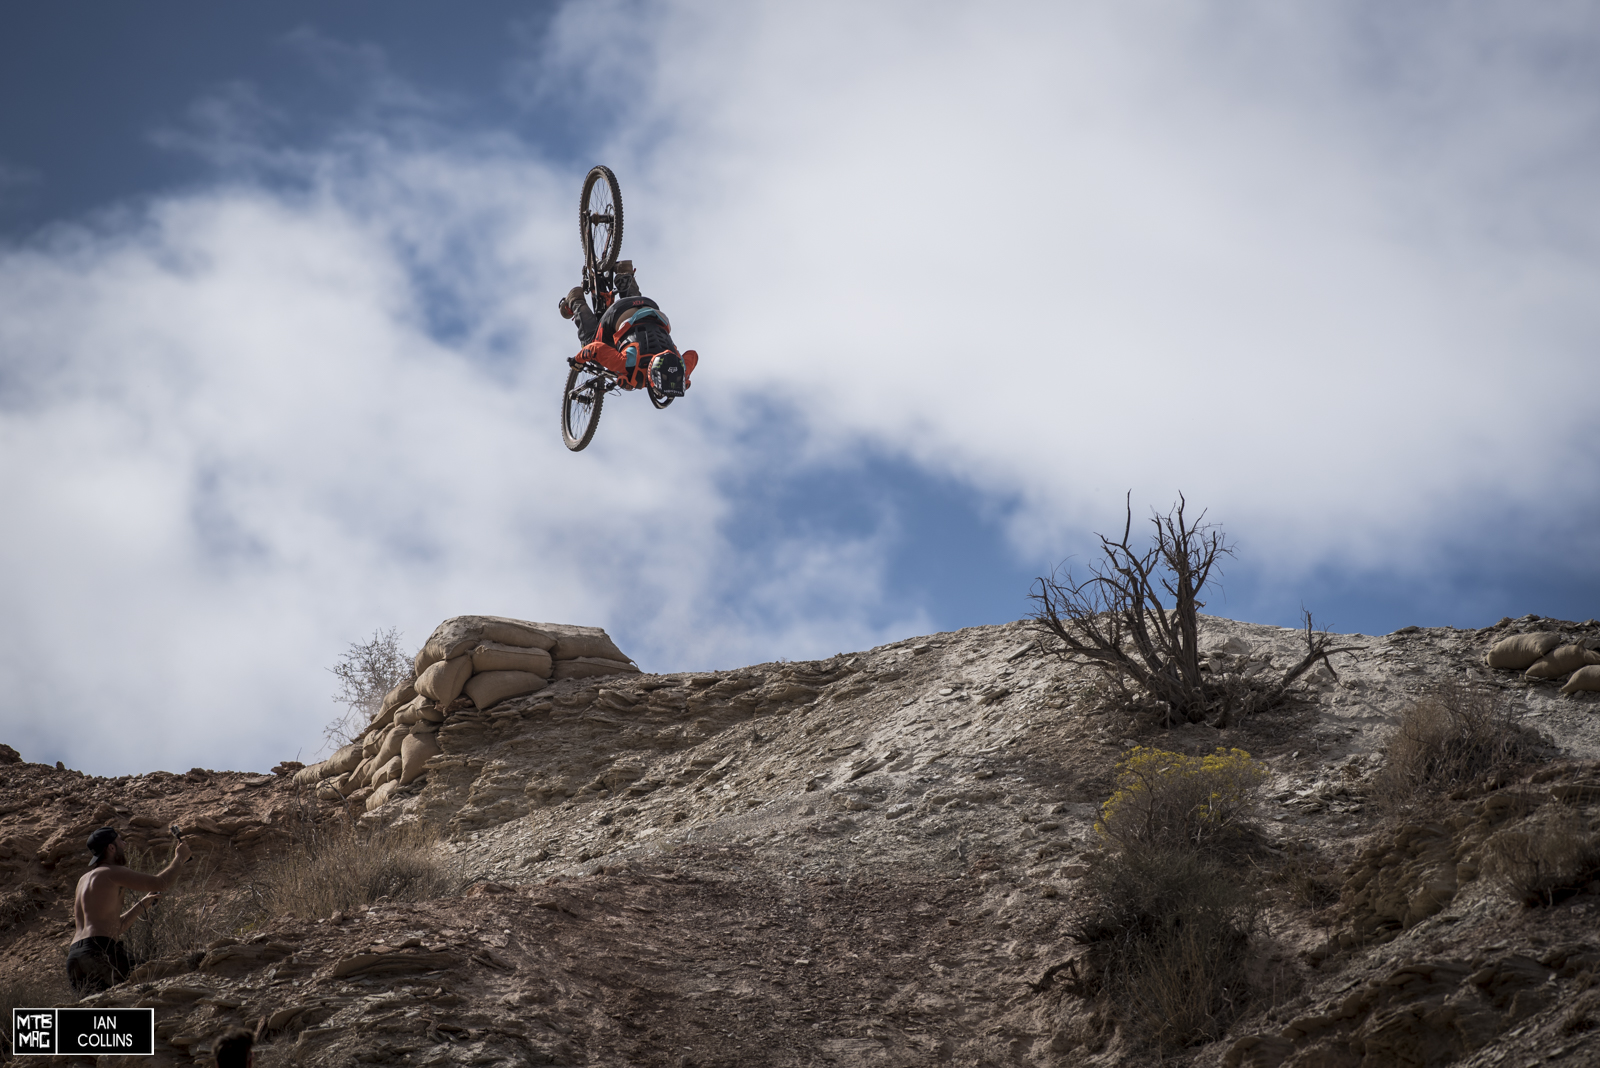 Sam Reynolds came out swinging at his first rampage. He stomped this flip in his second run.